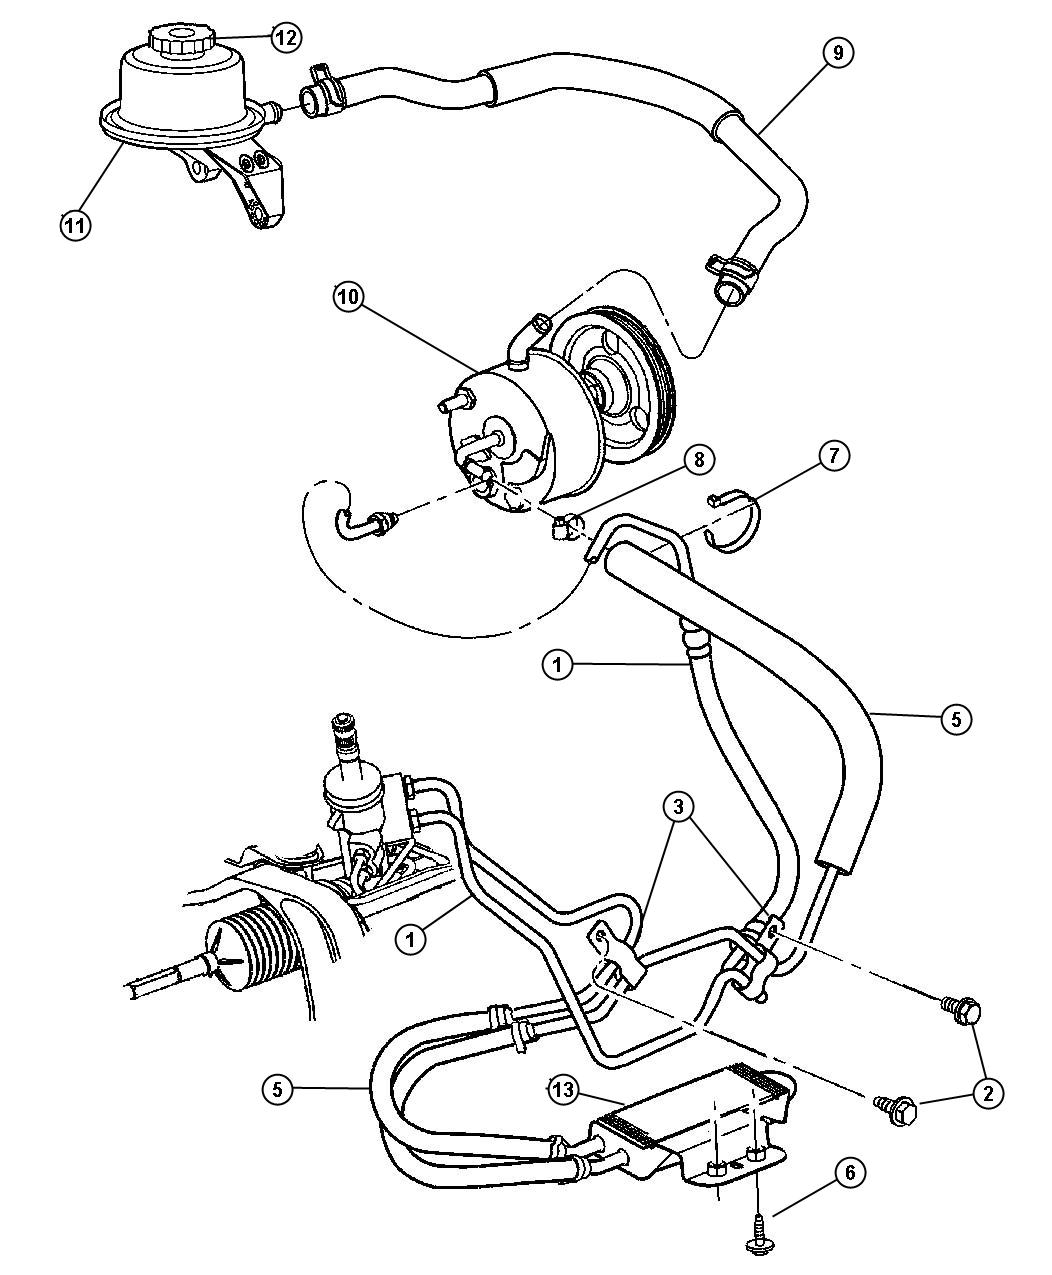 2001 Dodge Dakota Steering Parts Diagram, 2001, Free